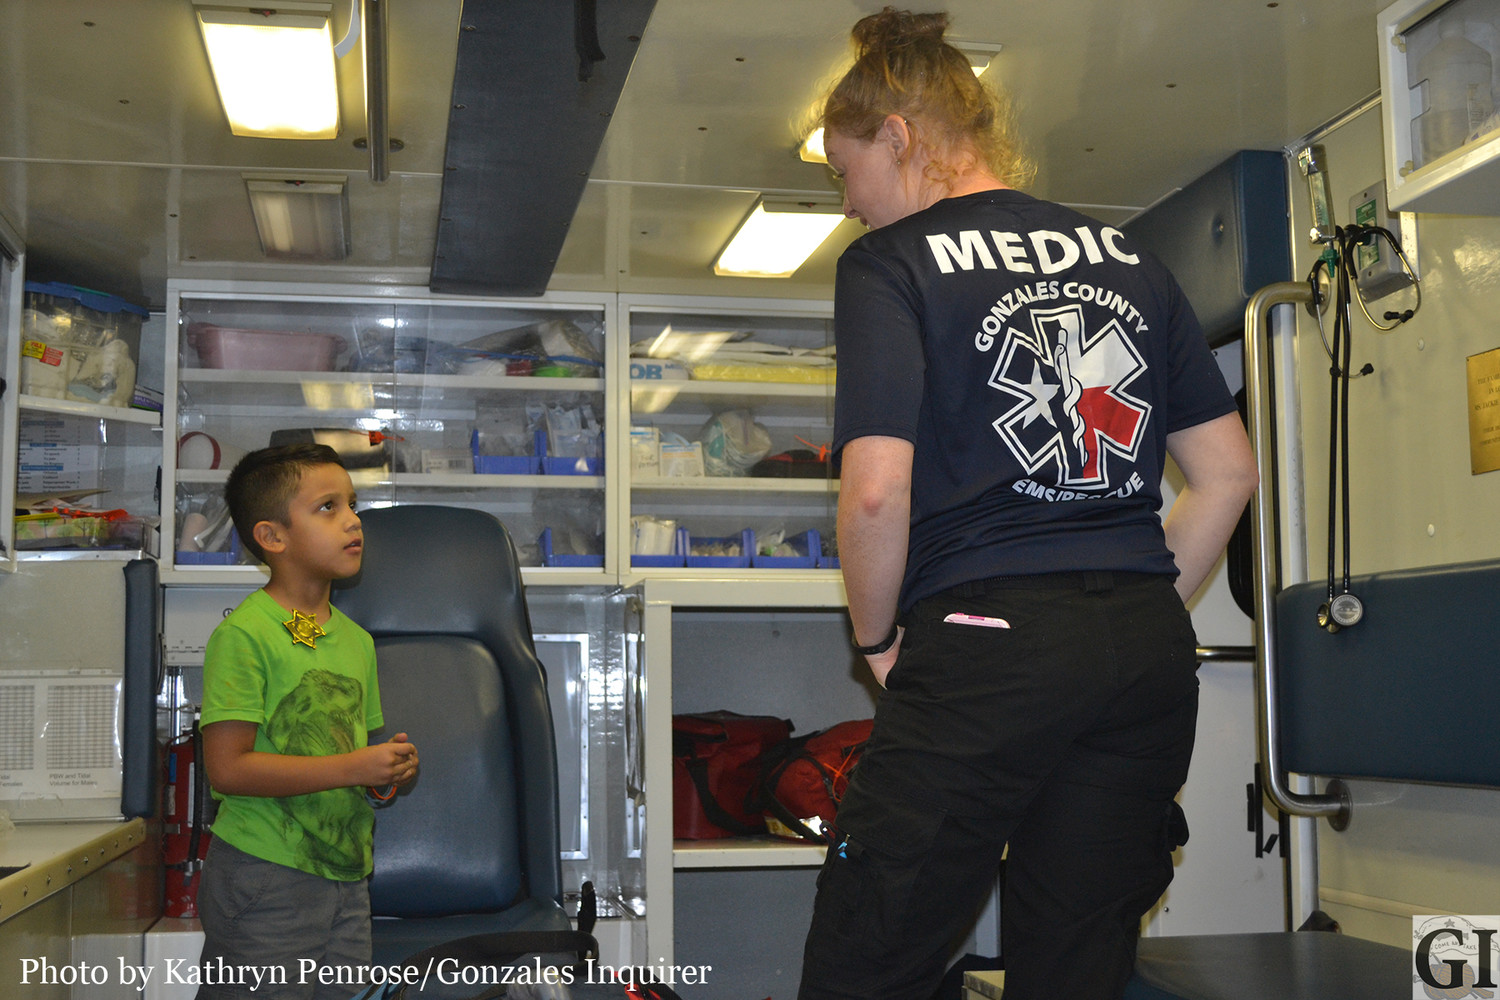 TJ Garza got a tour of a Gonzales County Emergency Medical Services Rescue Unit, during National Night Out Tuesday night. EMT Christine Brown showed the inquisitive youngster the unit and talked to him about emergency services.